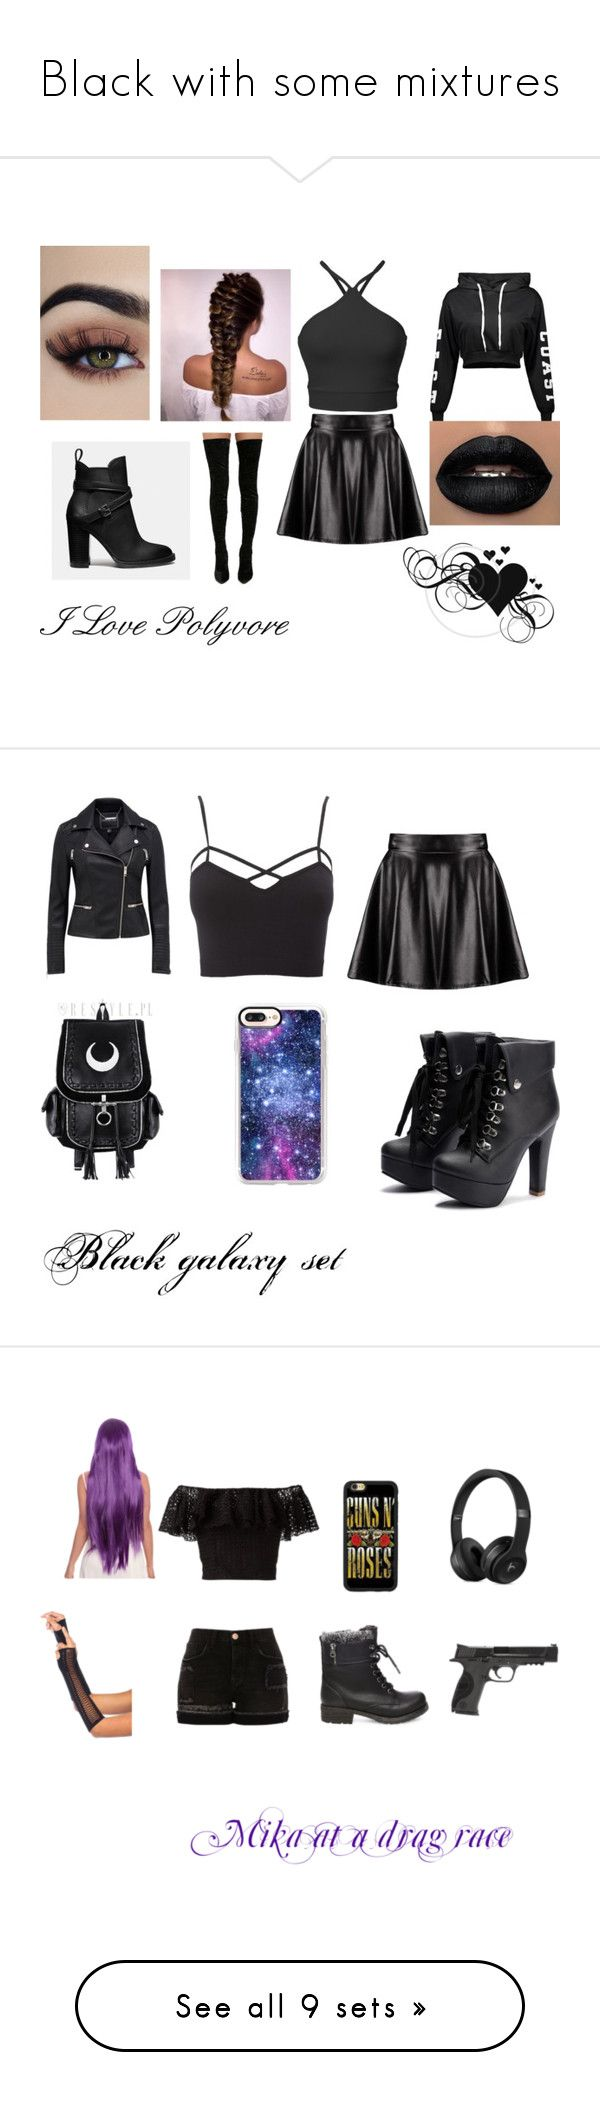 """Black with some mixtures"" by niacokerbengochea on Polyvore featuring Boohoo, Cape Robbin, Coach, Charlotte Russe, Casetify, plus size clothing, Philosophy di Lorenzo Serafini, River Island, Steve Madden and Smith & Wesson"